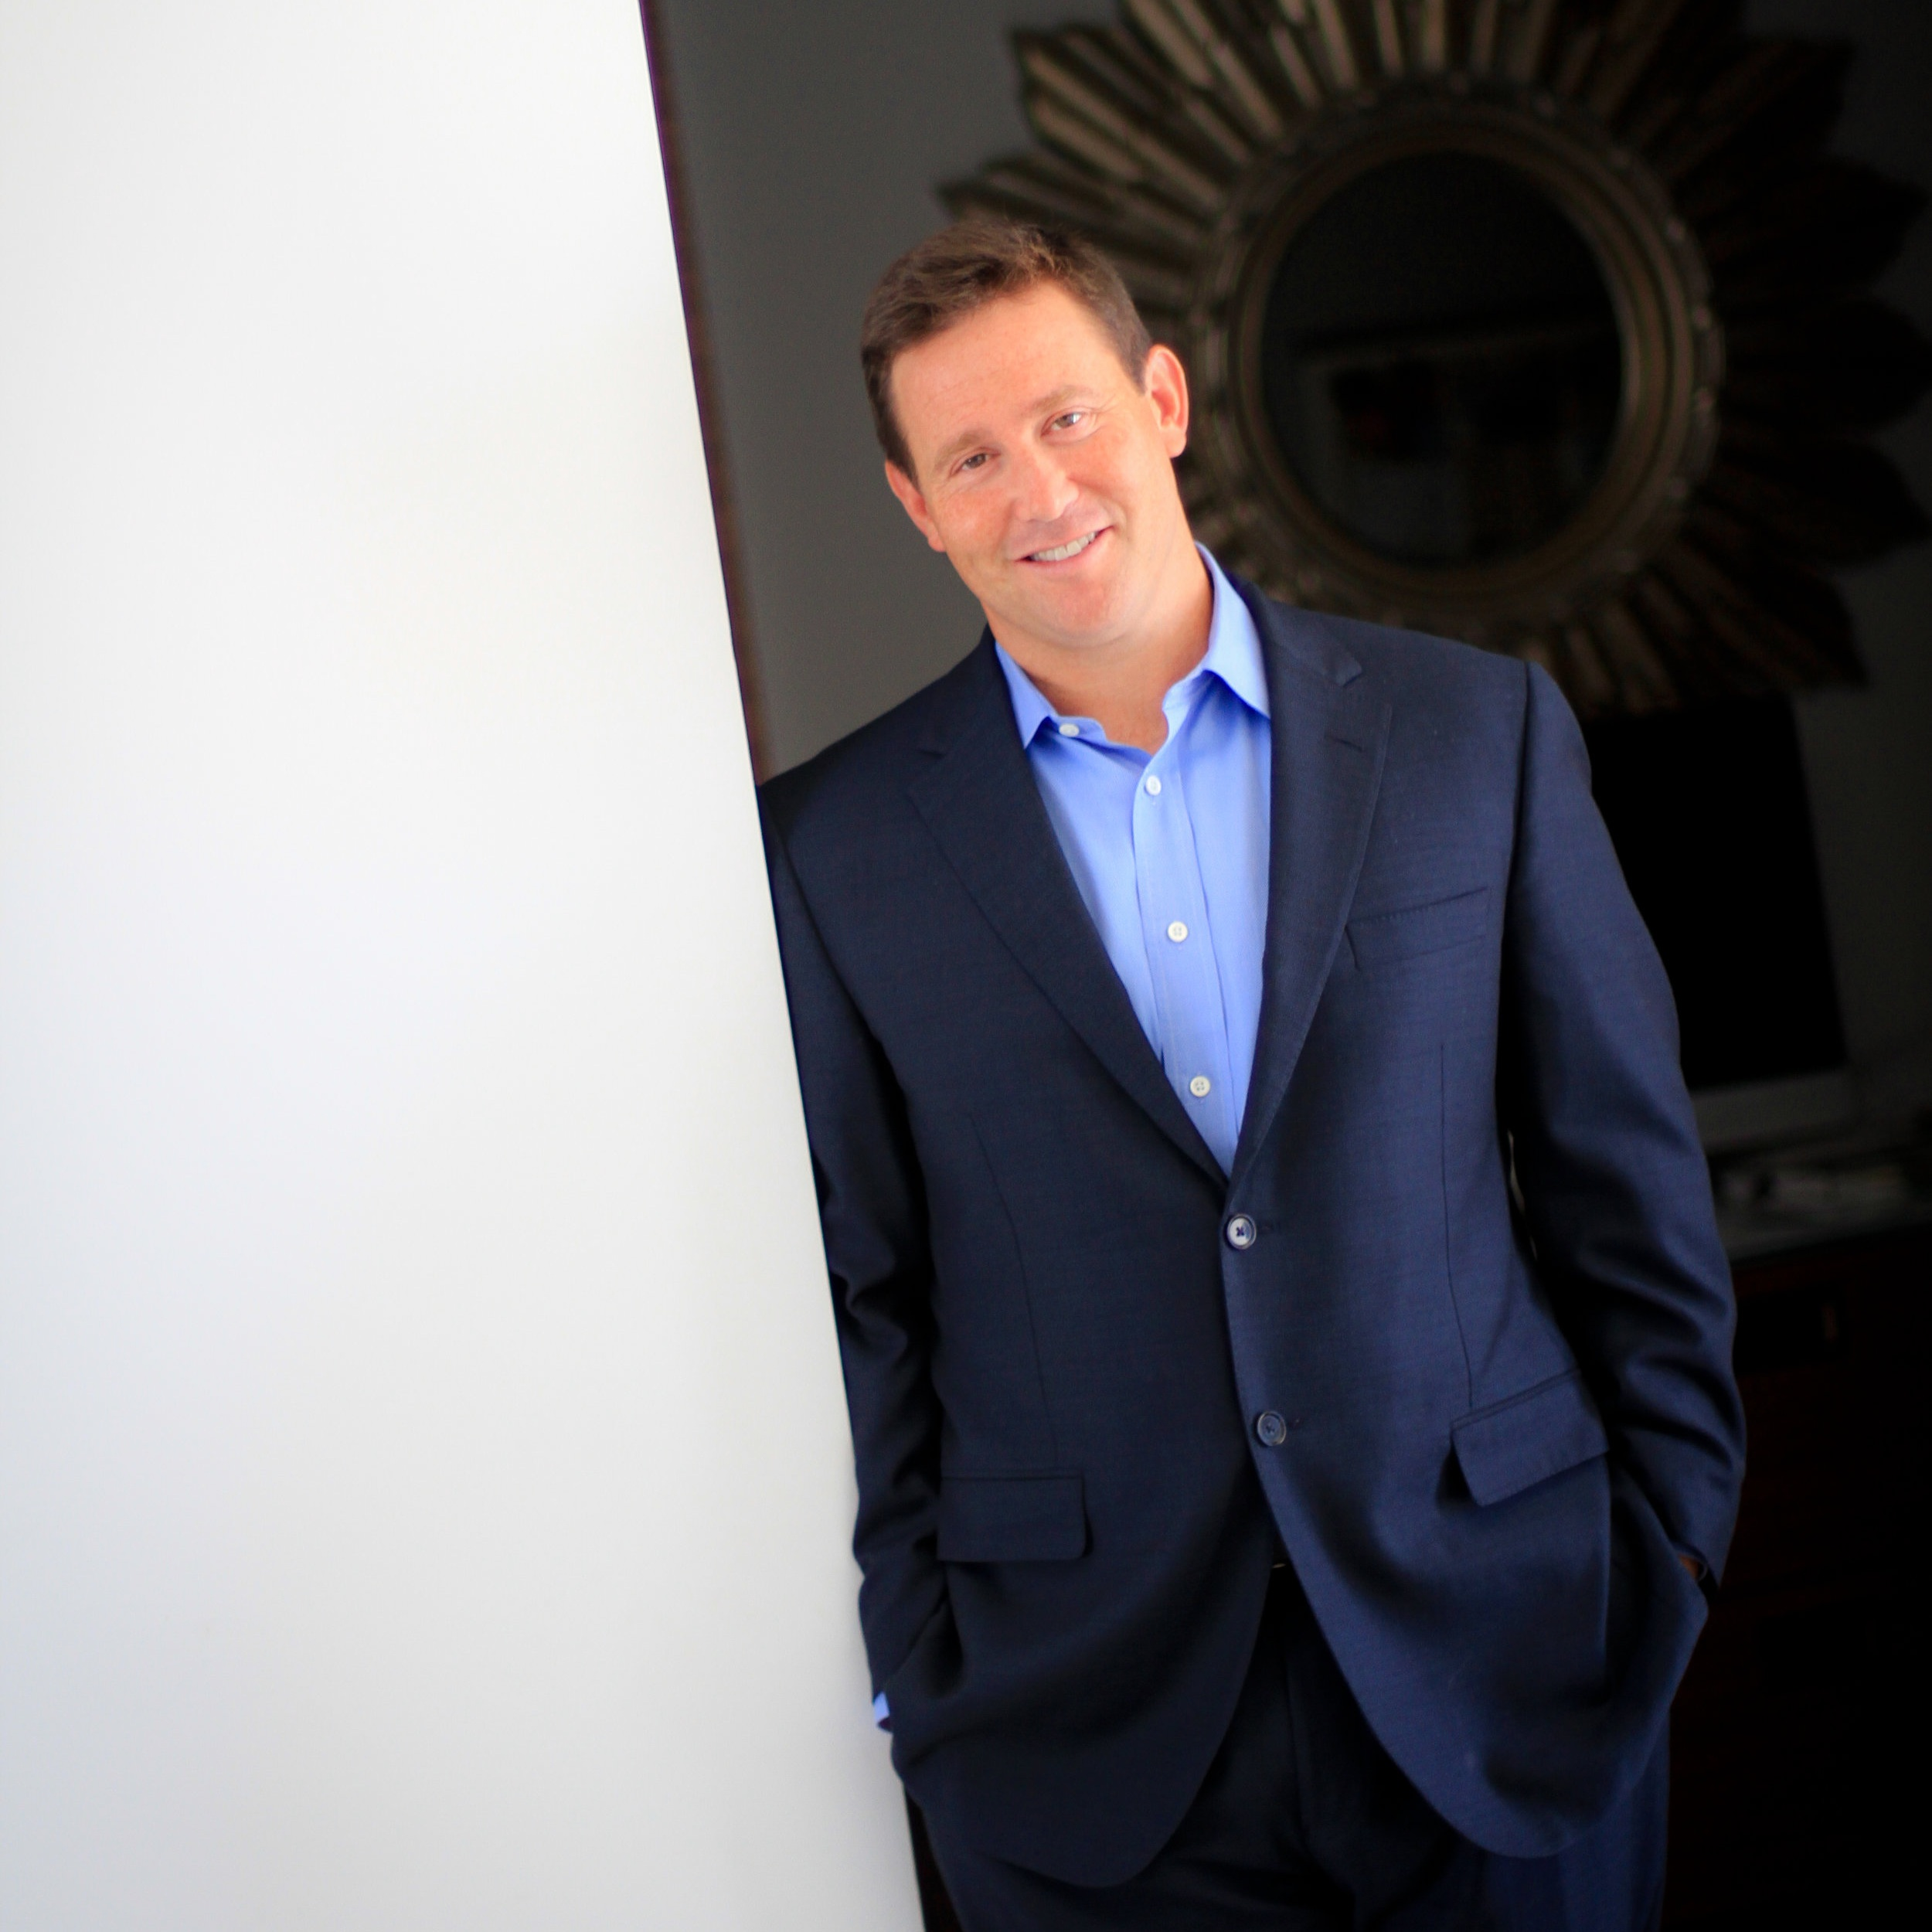 Jon Gordon, author of The Energy Bus, The Carpenter, and The Power of Positive Leadership -